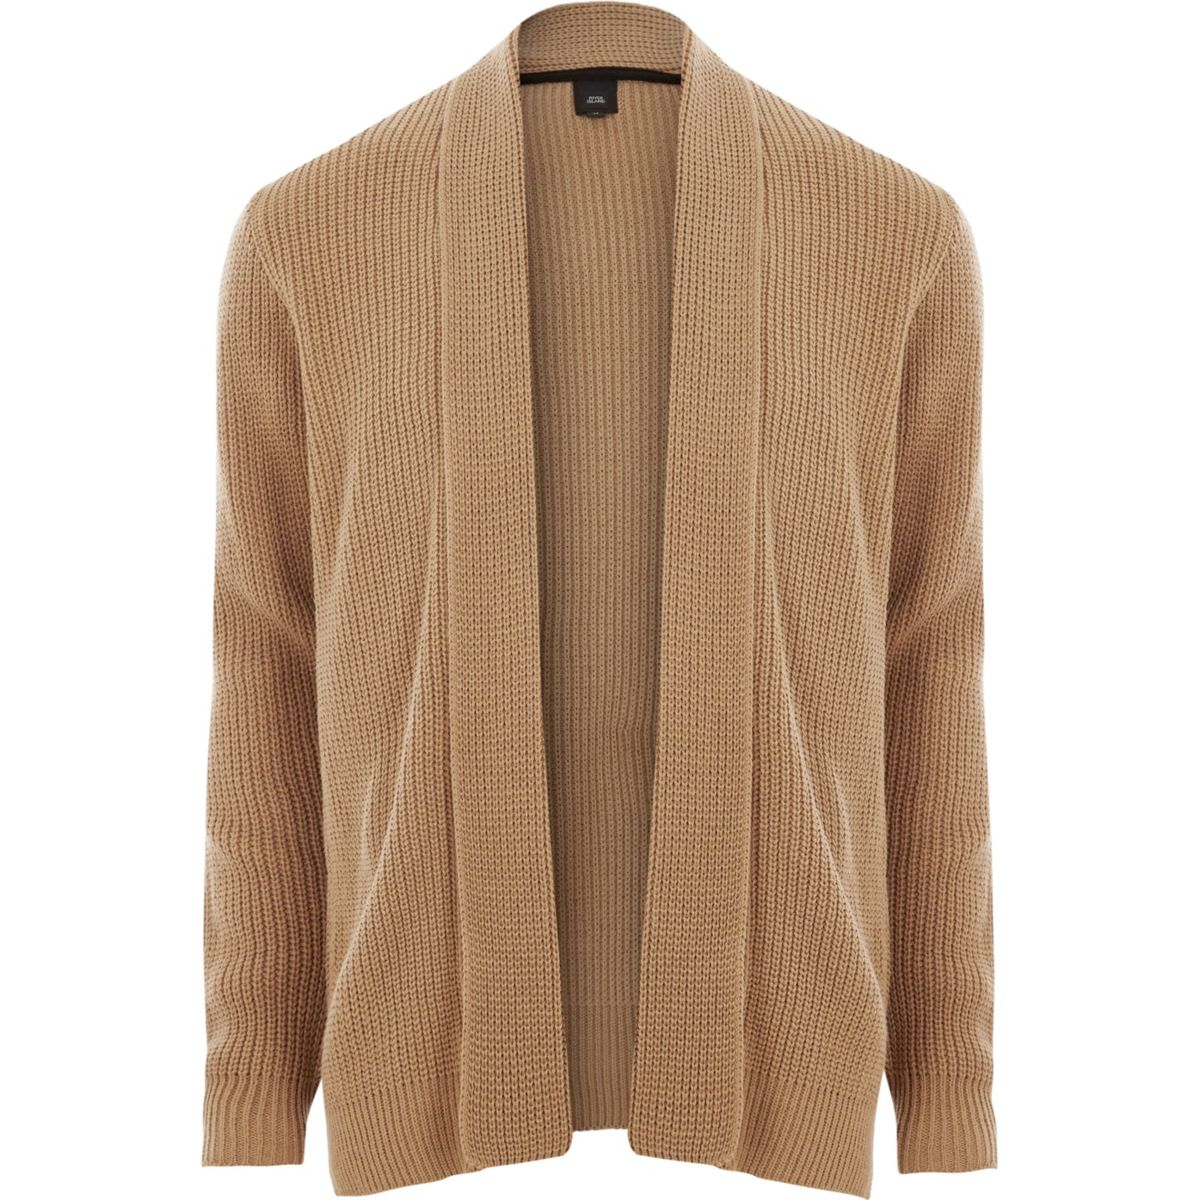 Light brown open front rib knit cardigan